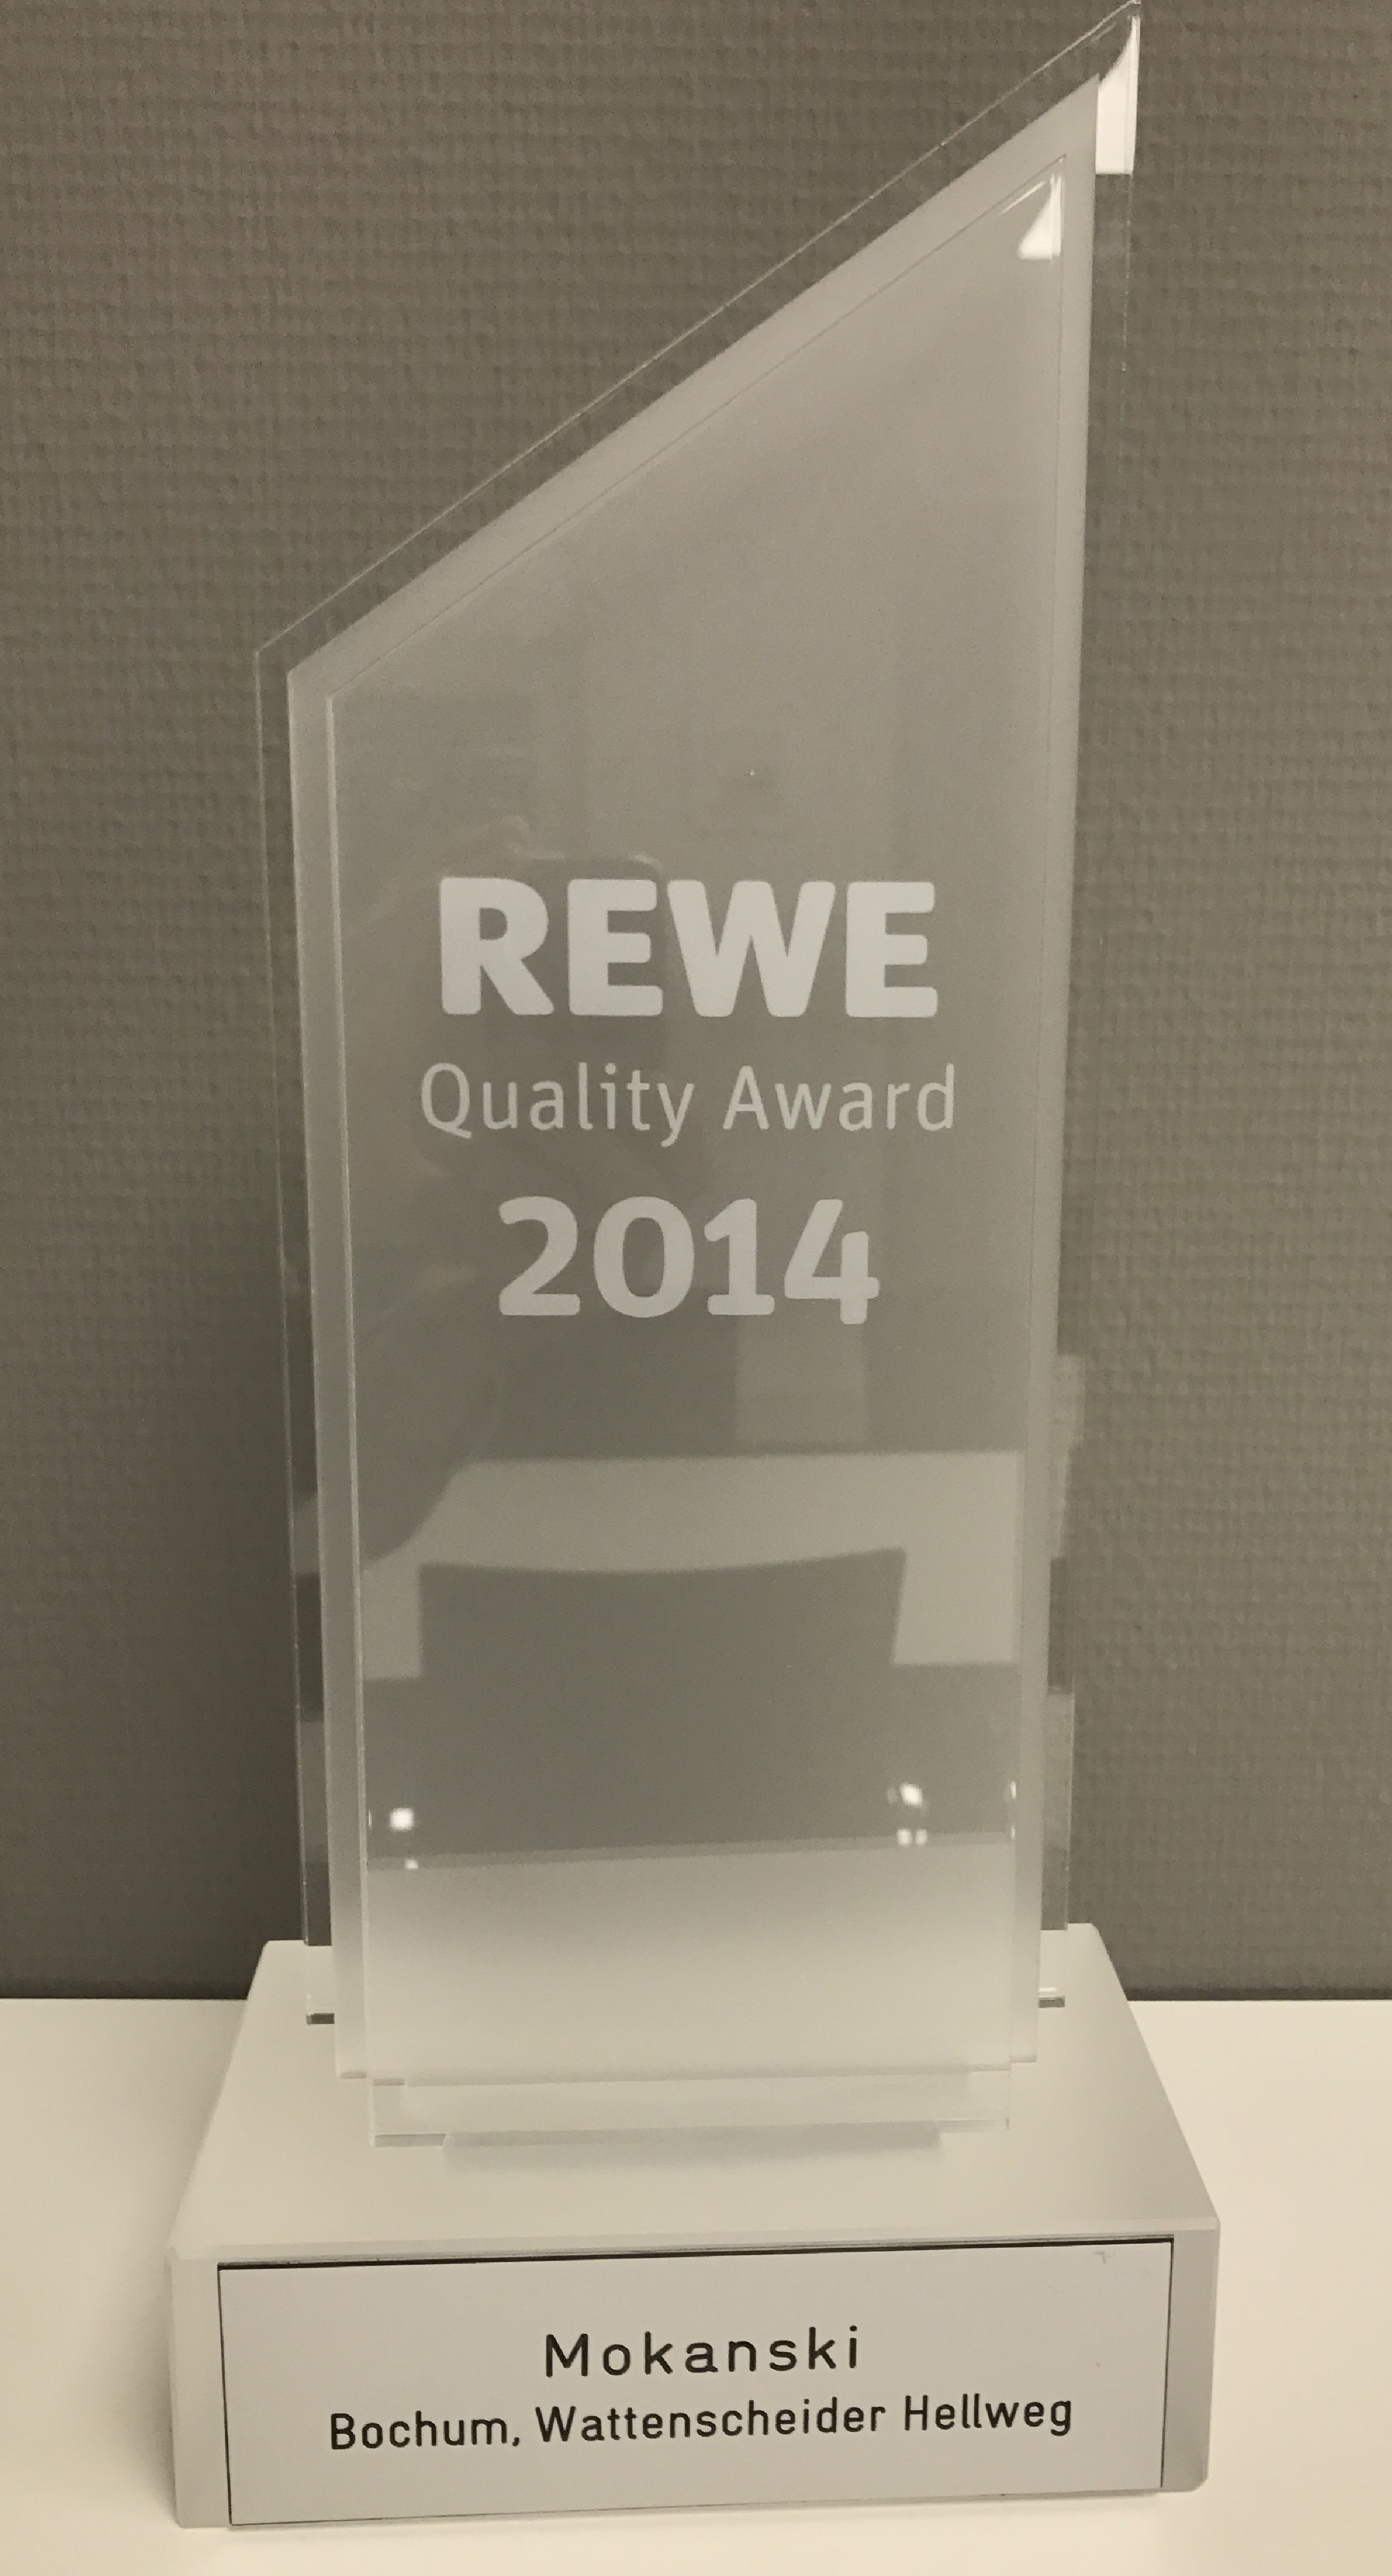 QualityAward2014